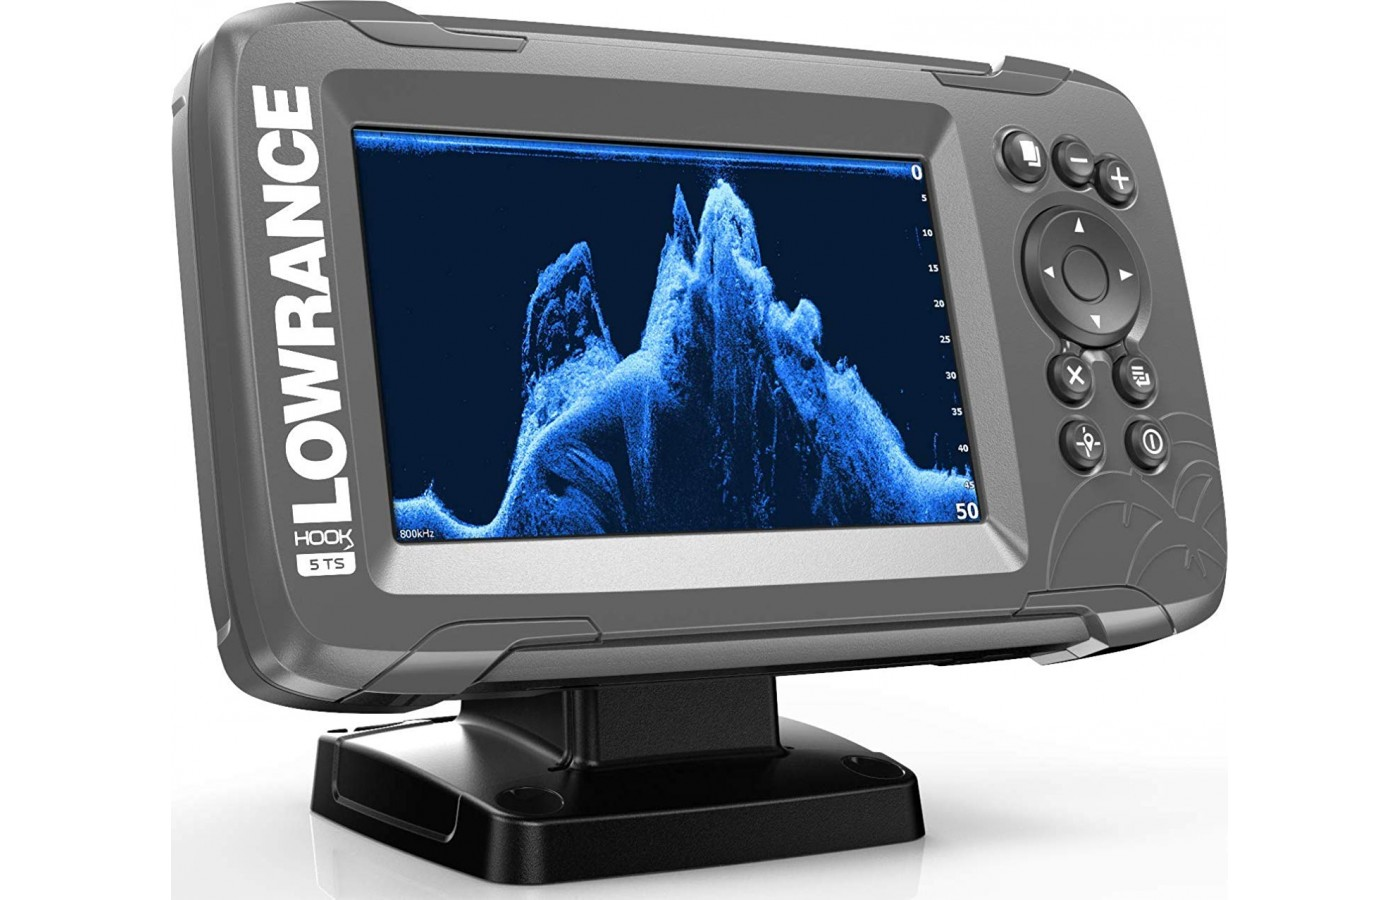 This fish finder has a high-resolution display.